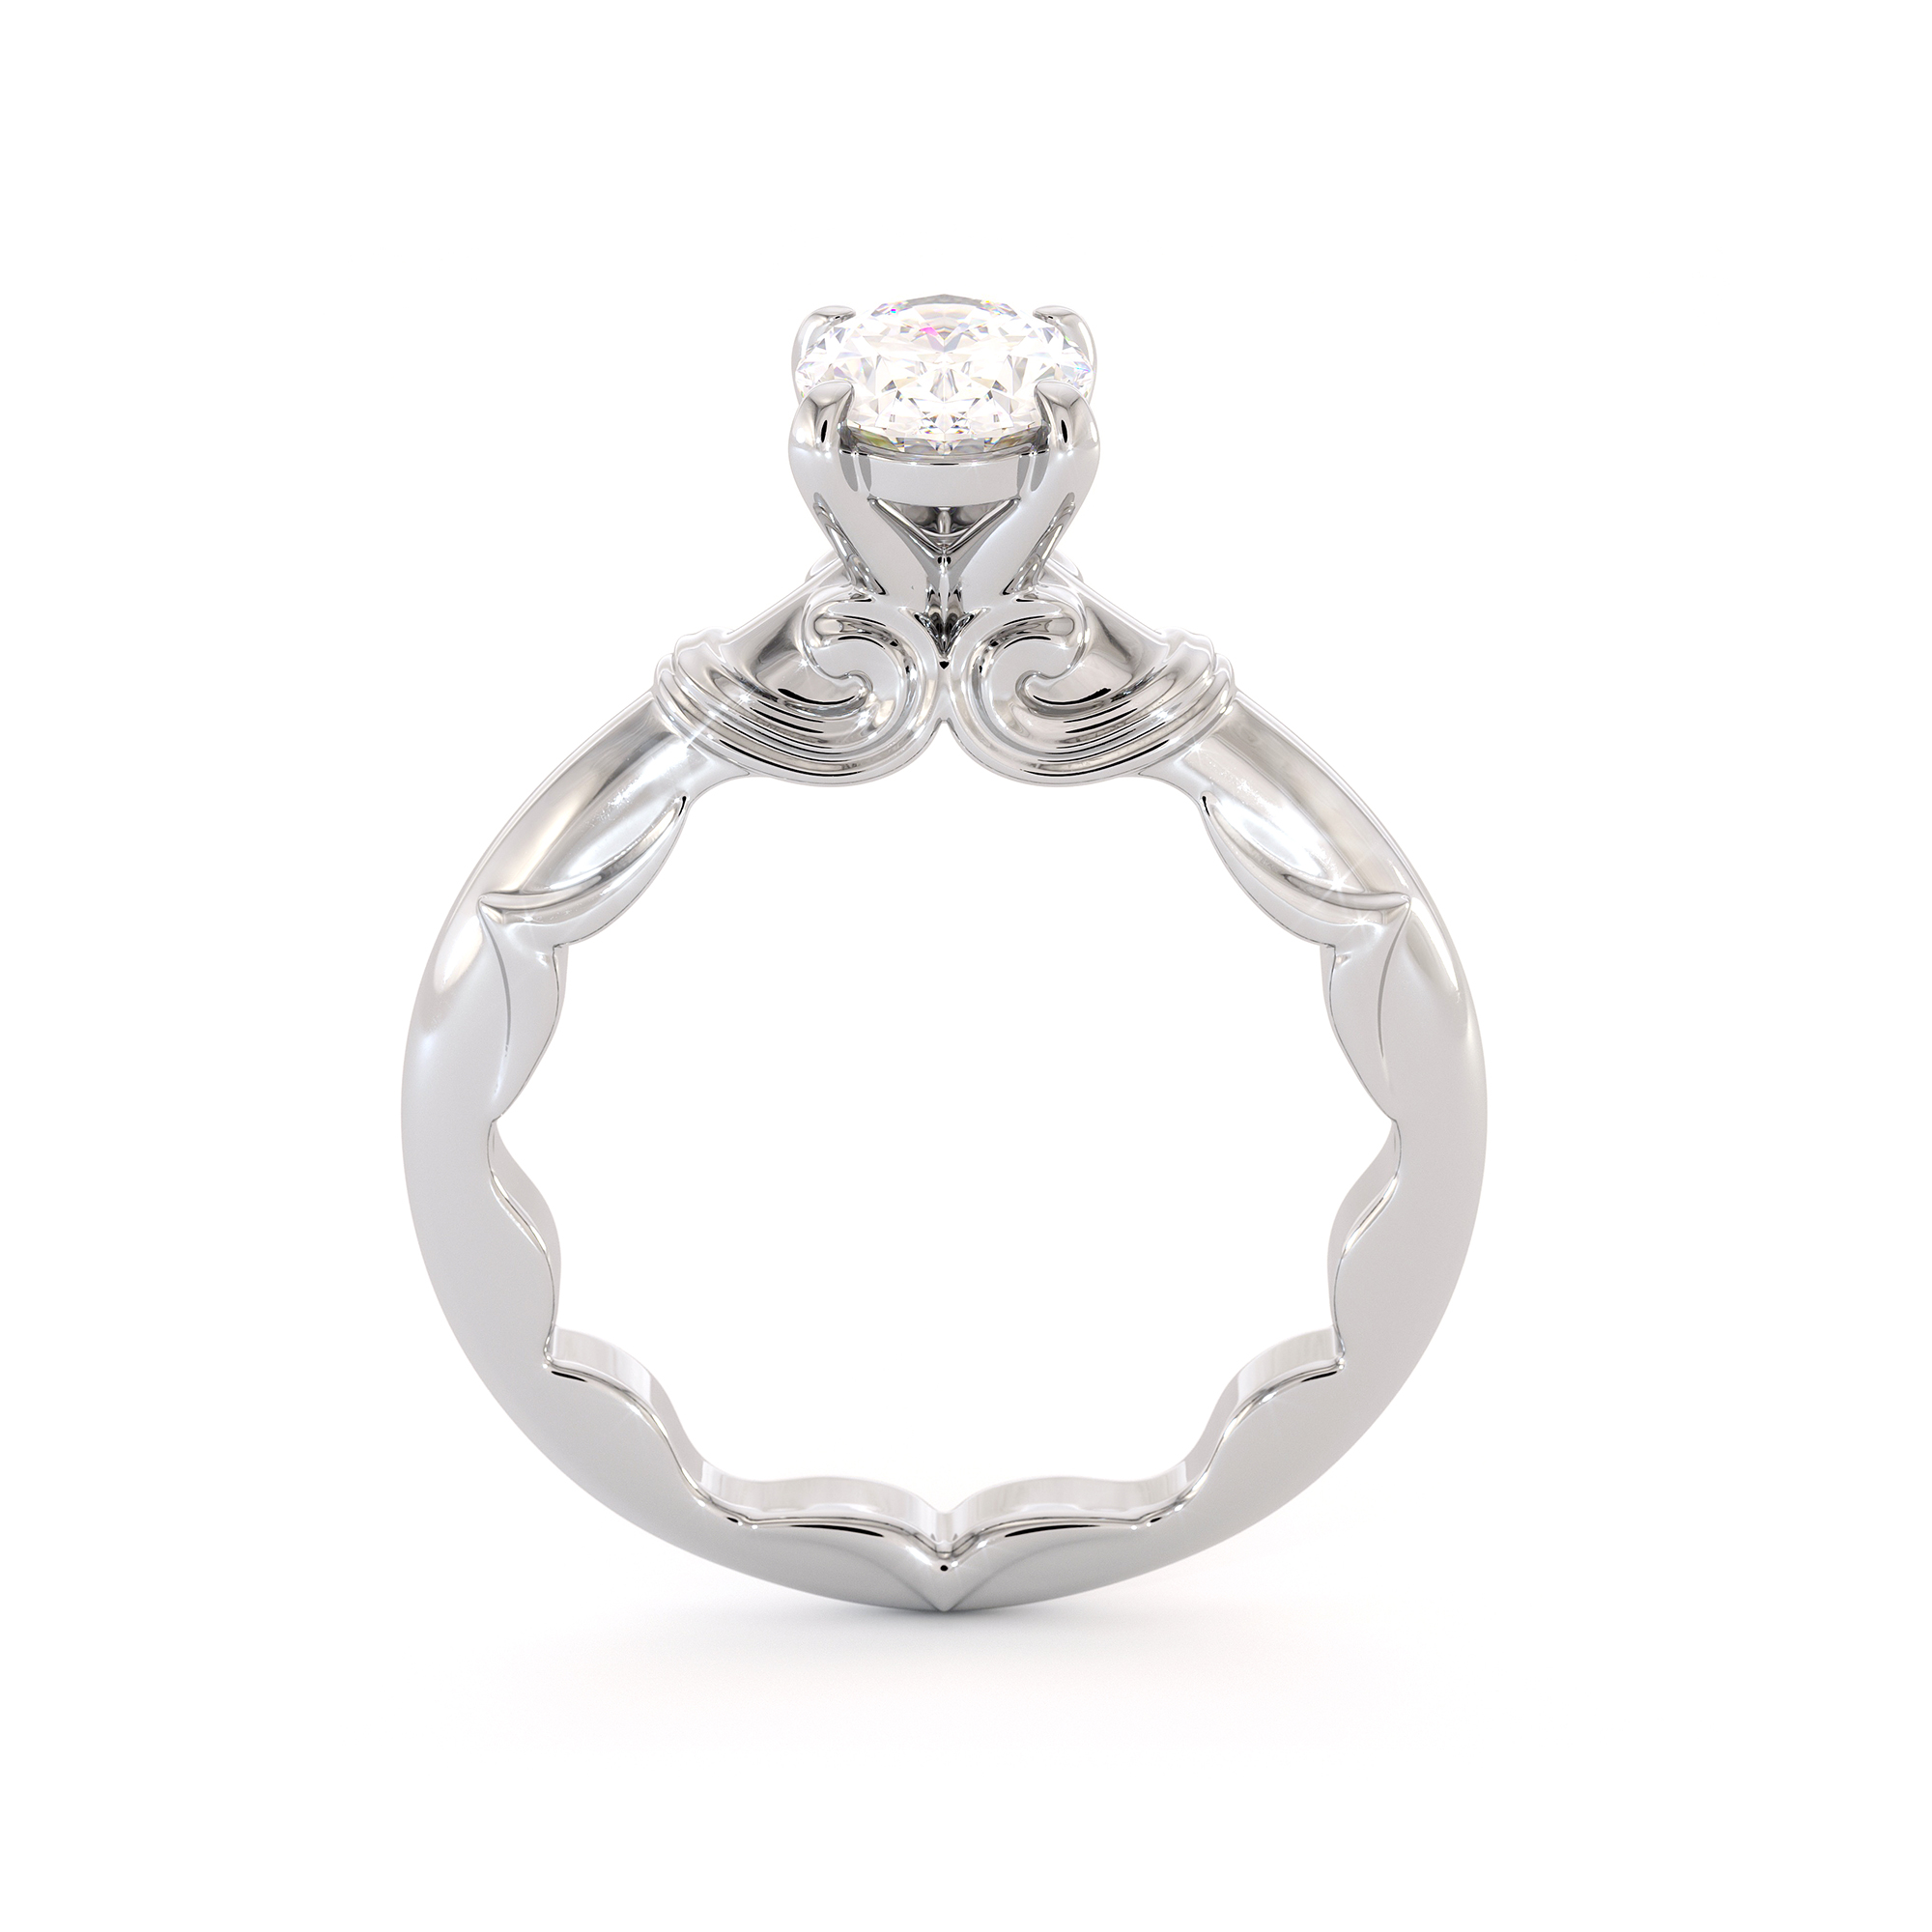 Solitaire 1.5 Ct Diamond Engagement Ring Oval Cut  Moissanite White Gold Ring